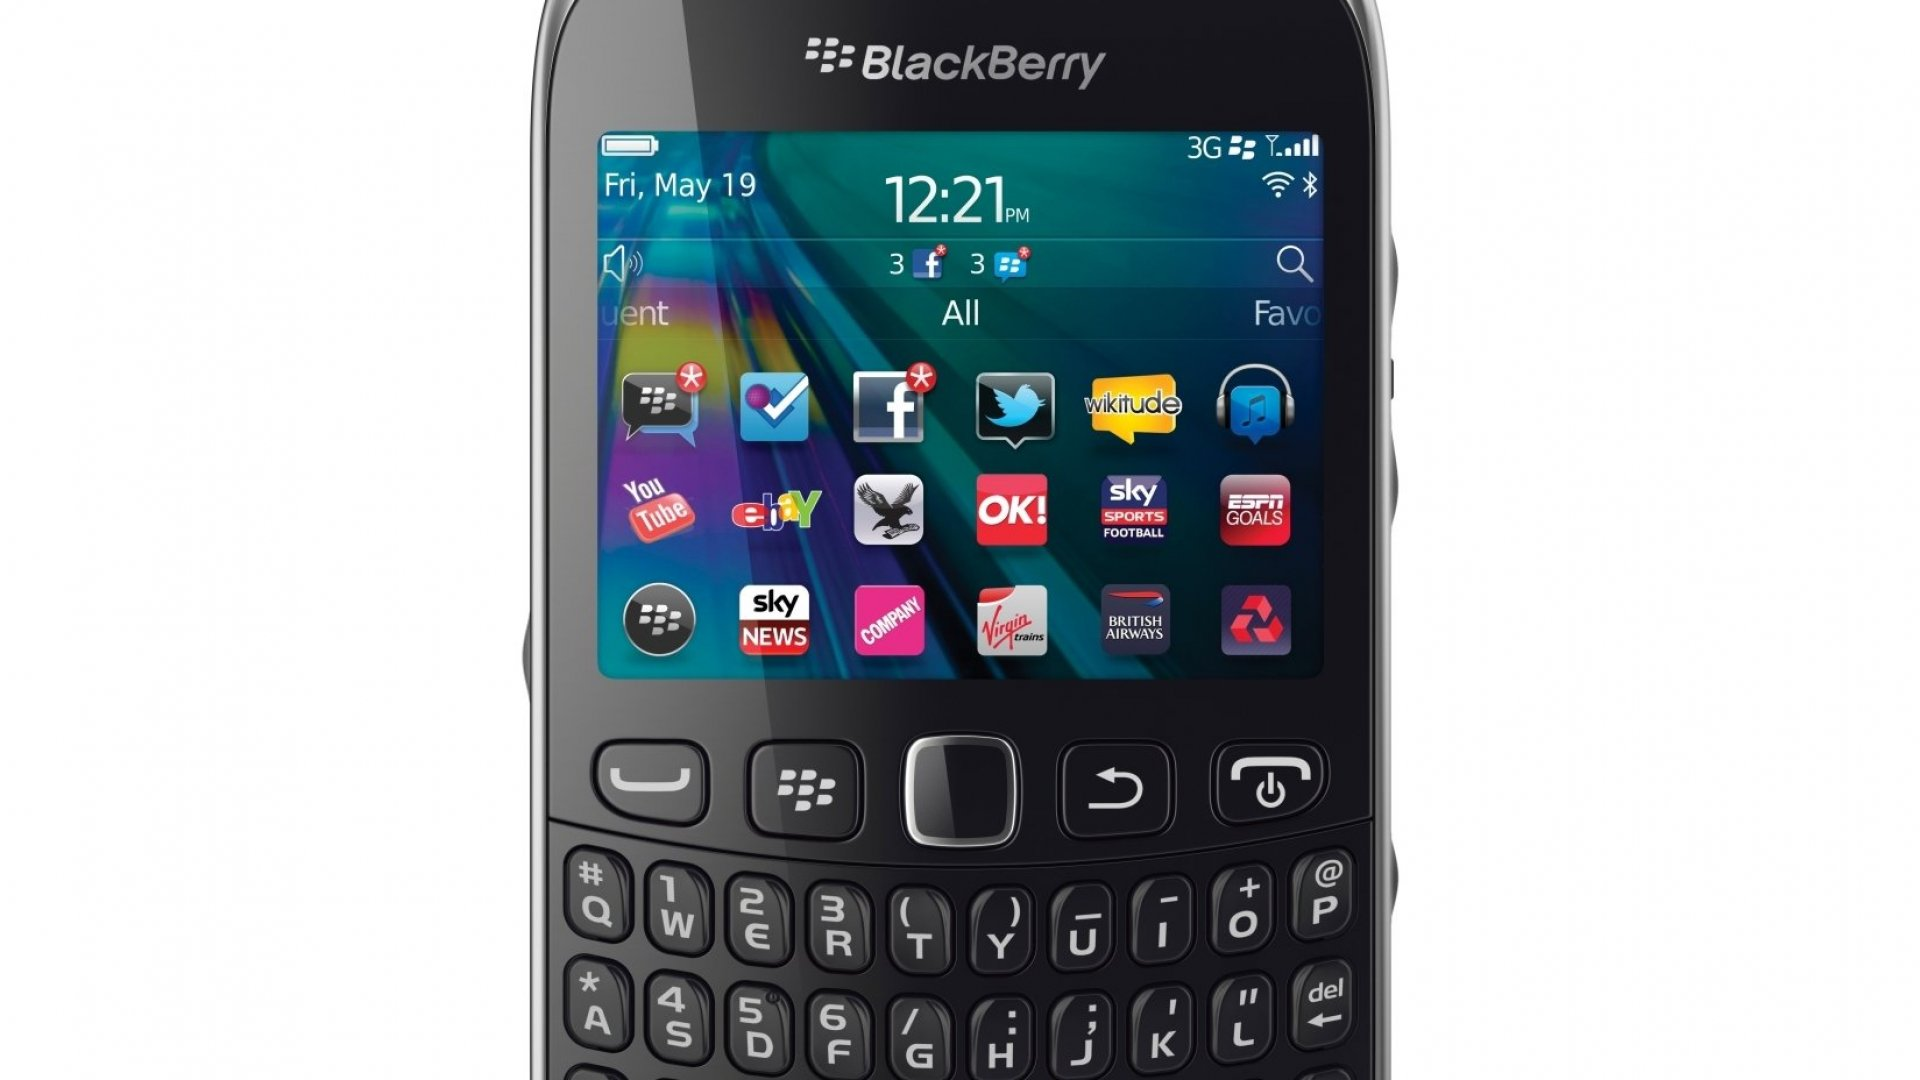 BlackBerry Will Become a Software Only Company